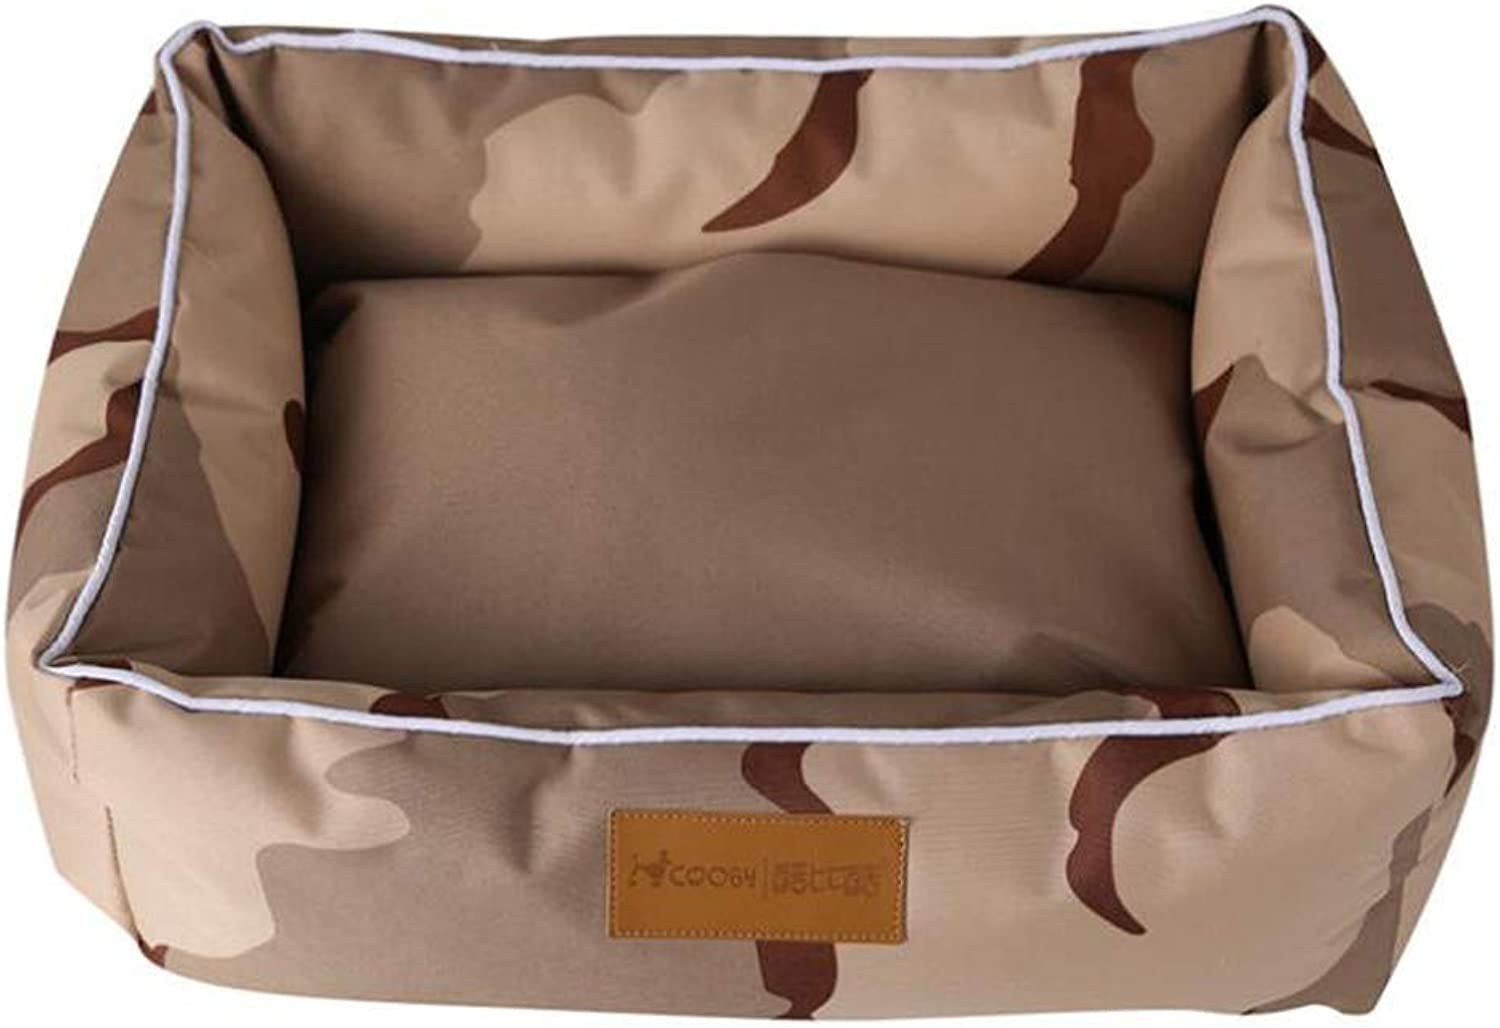 Camouflage Kennel Cat Litter Pet Nest Four Seasons Universal Waterproof Breathable Fashion Durable Dog Sofa Cat Bed,S